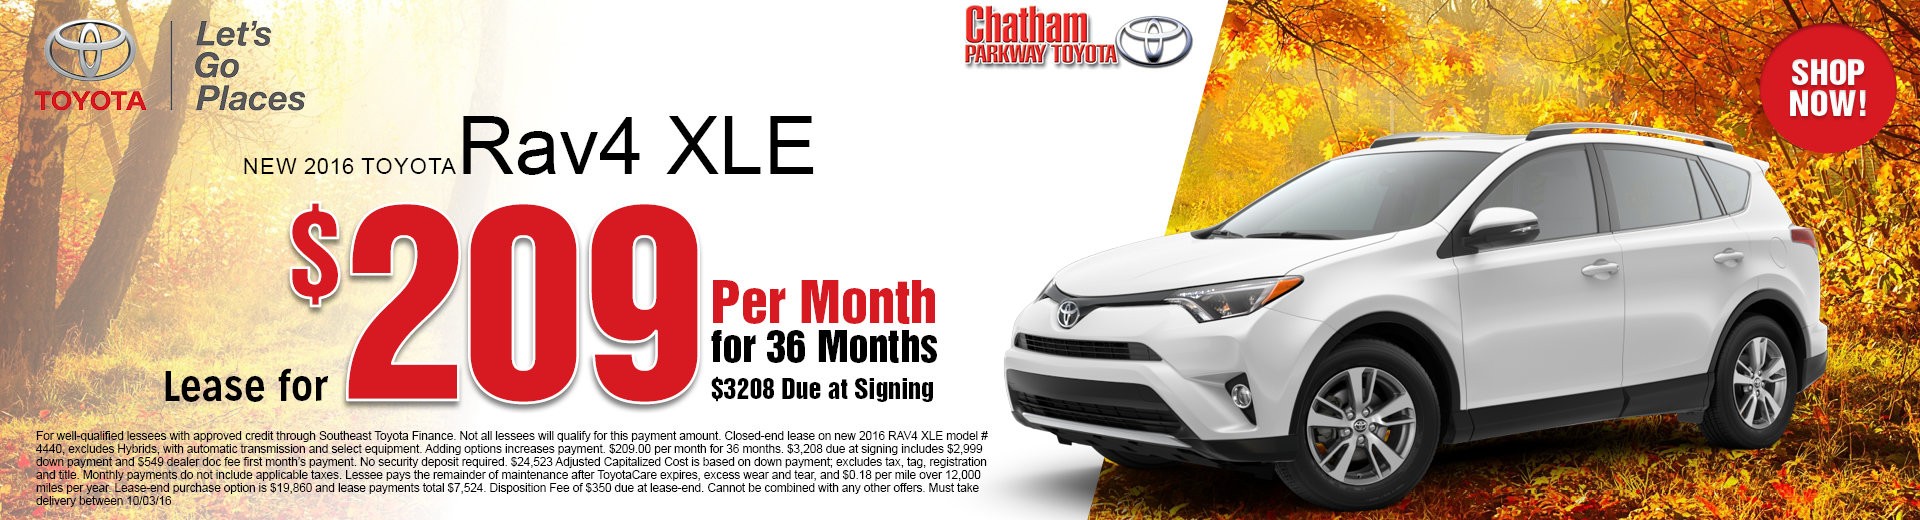 Chatham Parkway Toyota >> Chatham Parkway Toyota Service Coupons Eating Out Deals In Glasgow